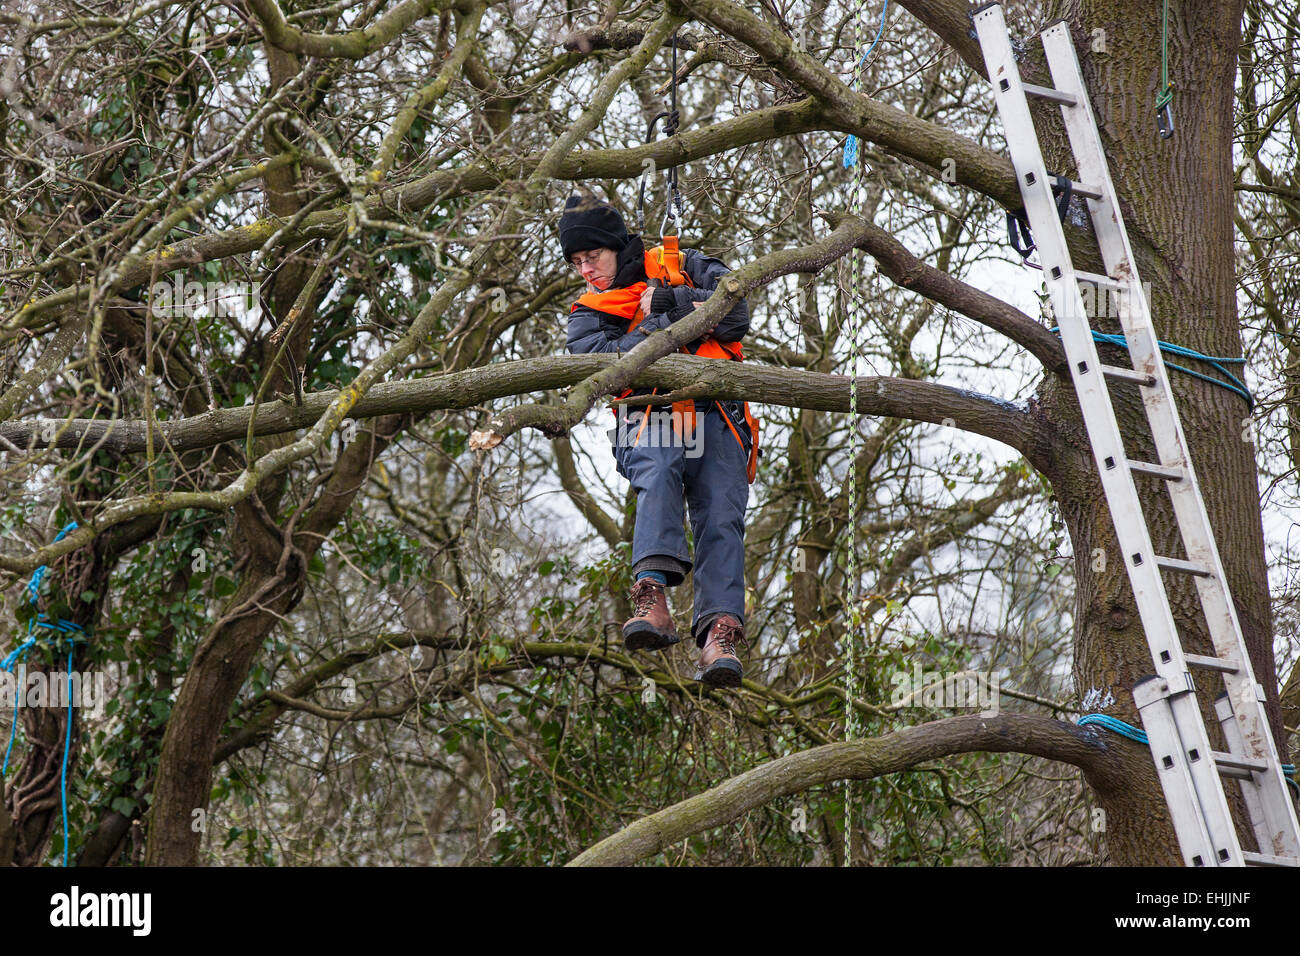 Bristol, UK. 14th Mar, 2015. A protester who is lowered by rope from a tree-top platform before being evicted from - Stock Image